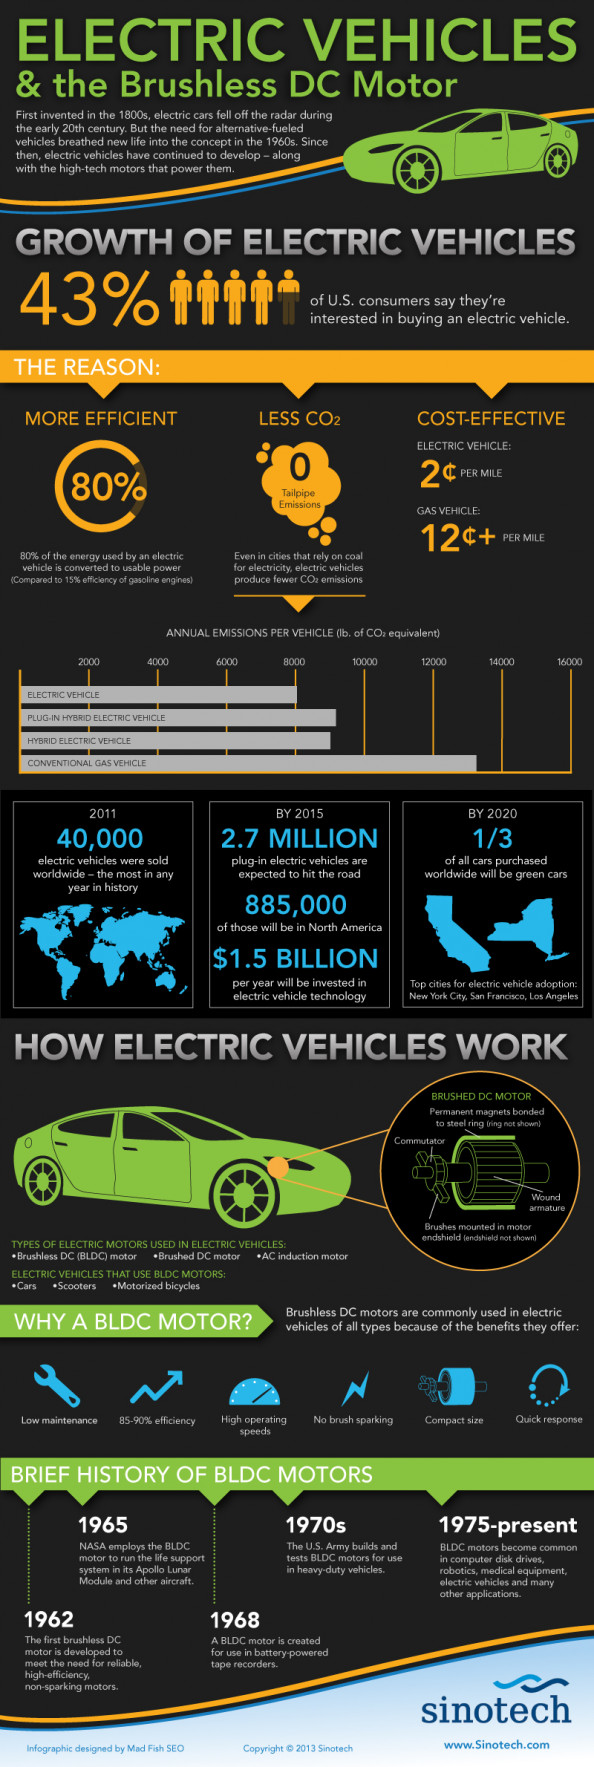 Electric Vehicles &amp; the Brushless DC Motor  Infographic